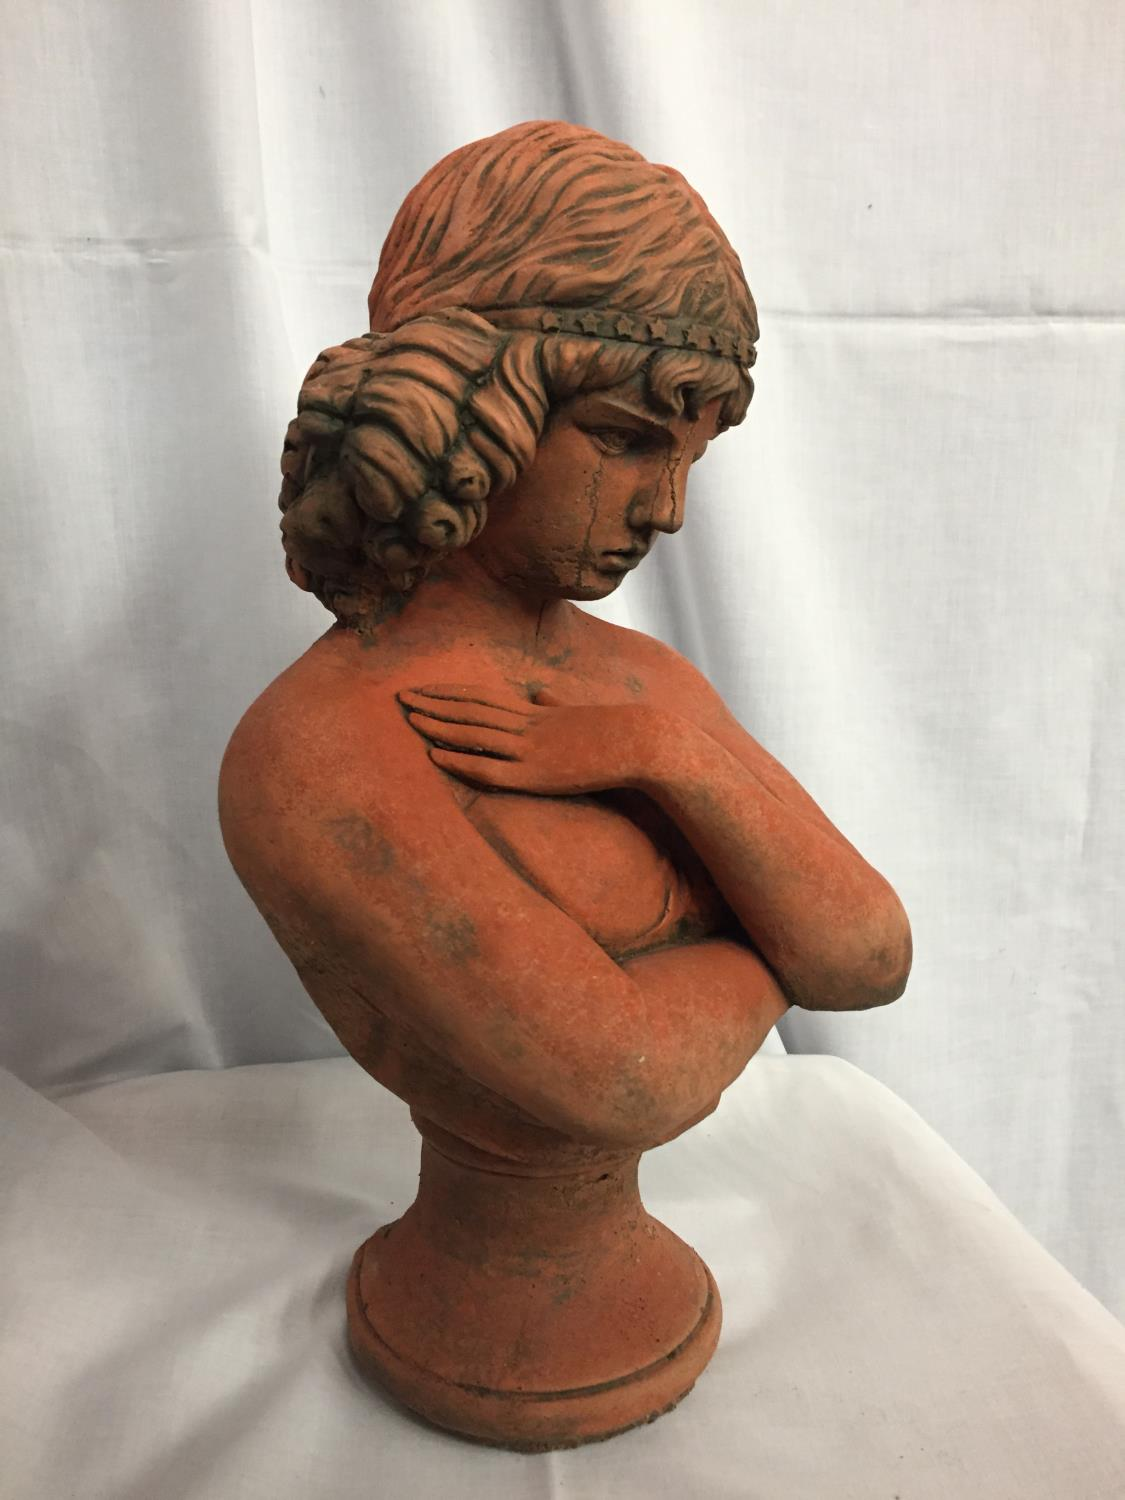 A TERRACOTA BUST OF A LADY - Image 3 of 3